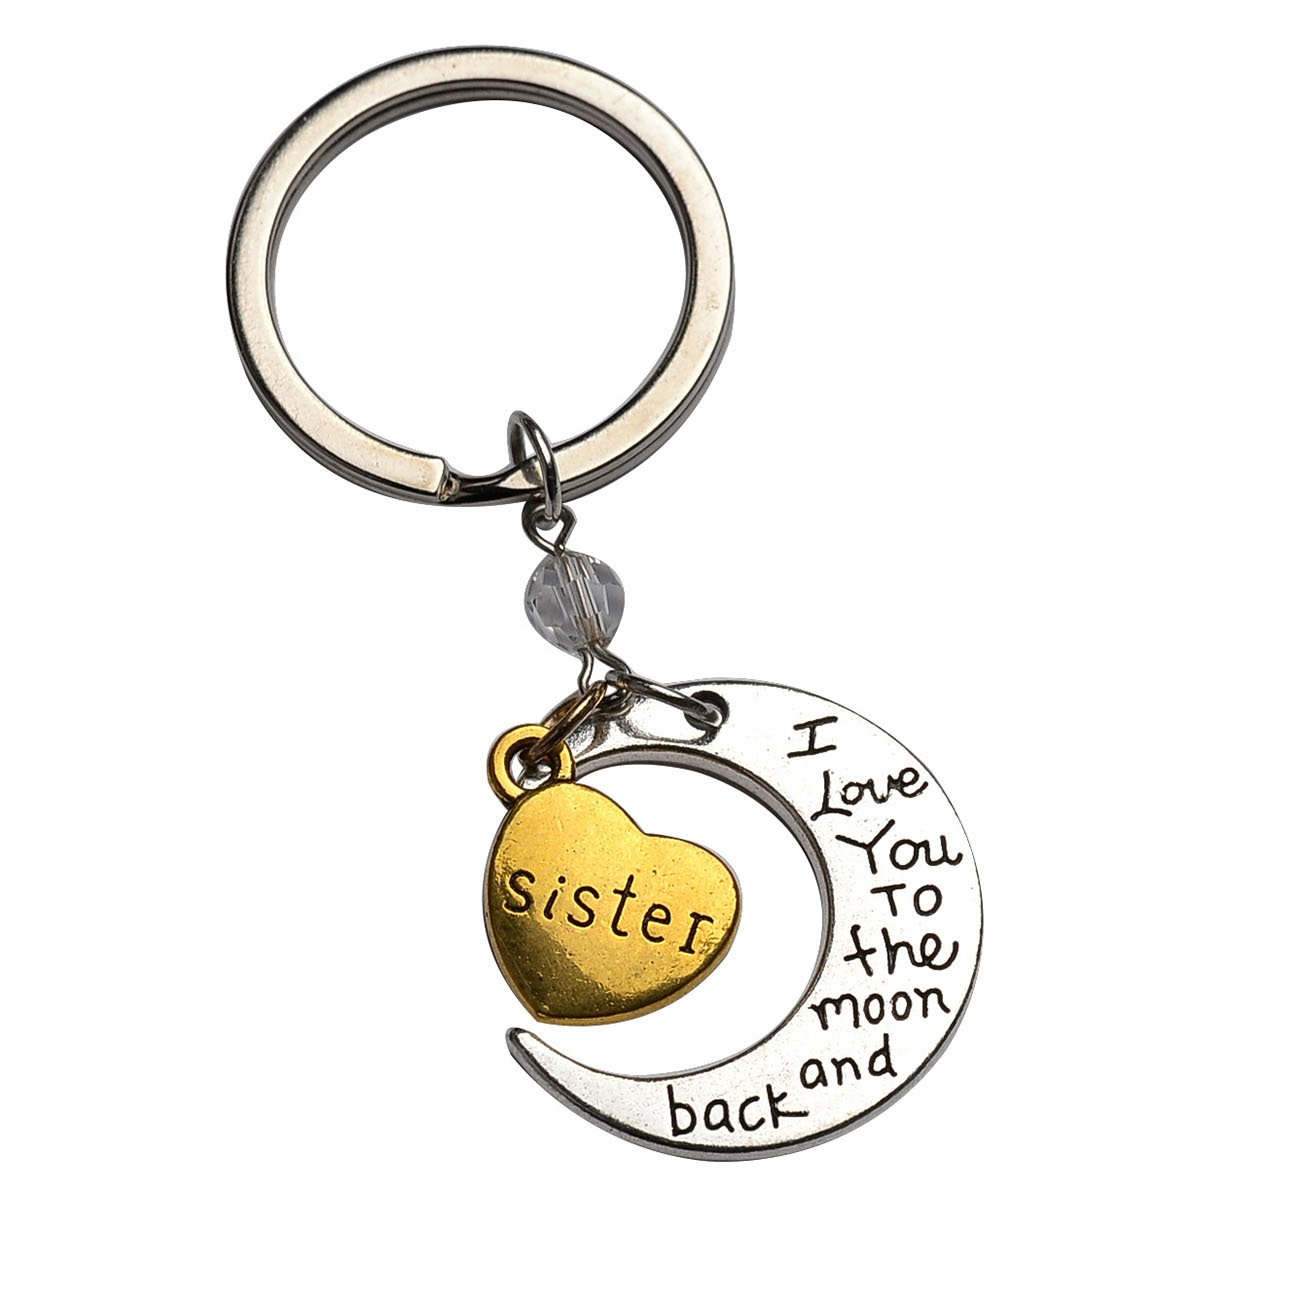 Silver Tone Daughter I Love You To The Moon and Back Heart Pendant Keychain JiangYan-US JY-KE-01-0007